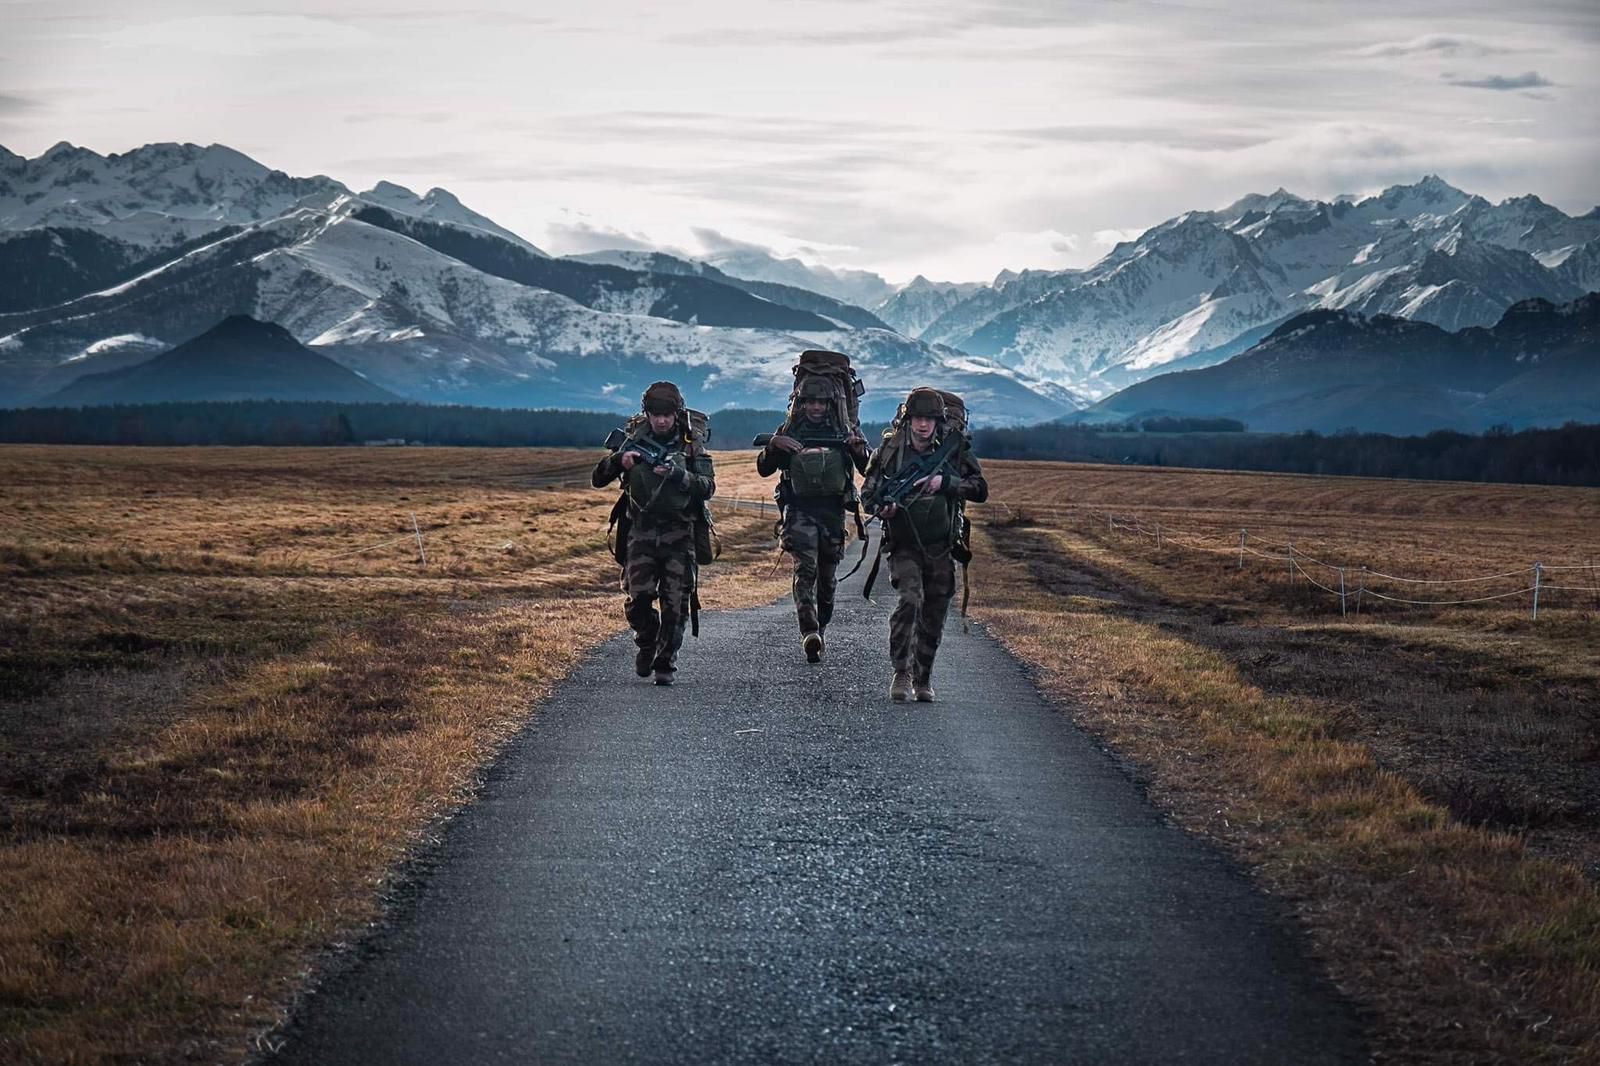 French parachute engineers from 17e RGP on their way out of the drop zone 2021